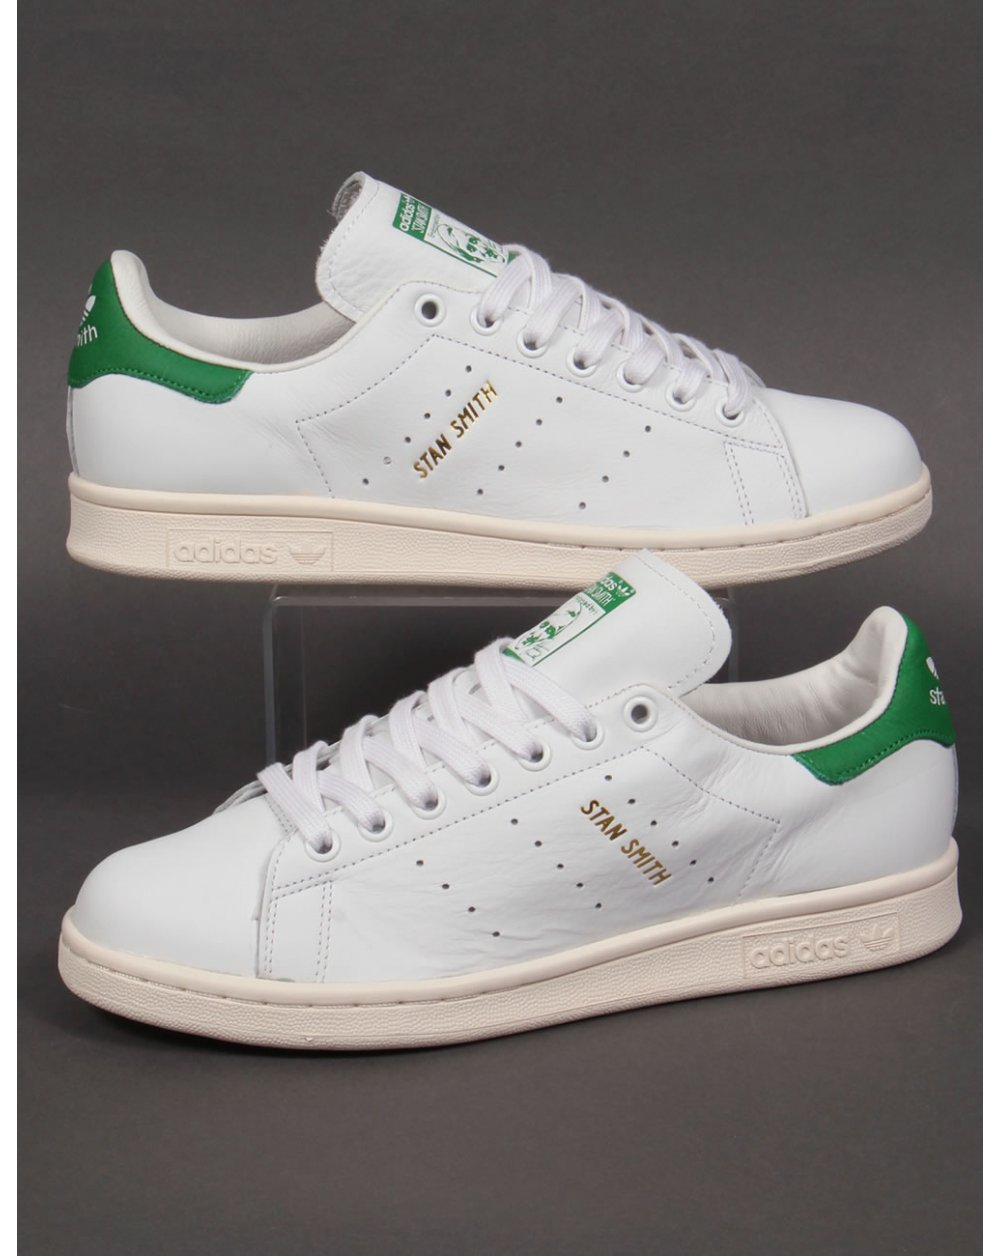 Adidas Originals Stan Smith Shoes  Adidas Co Uk